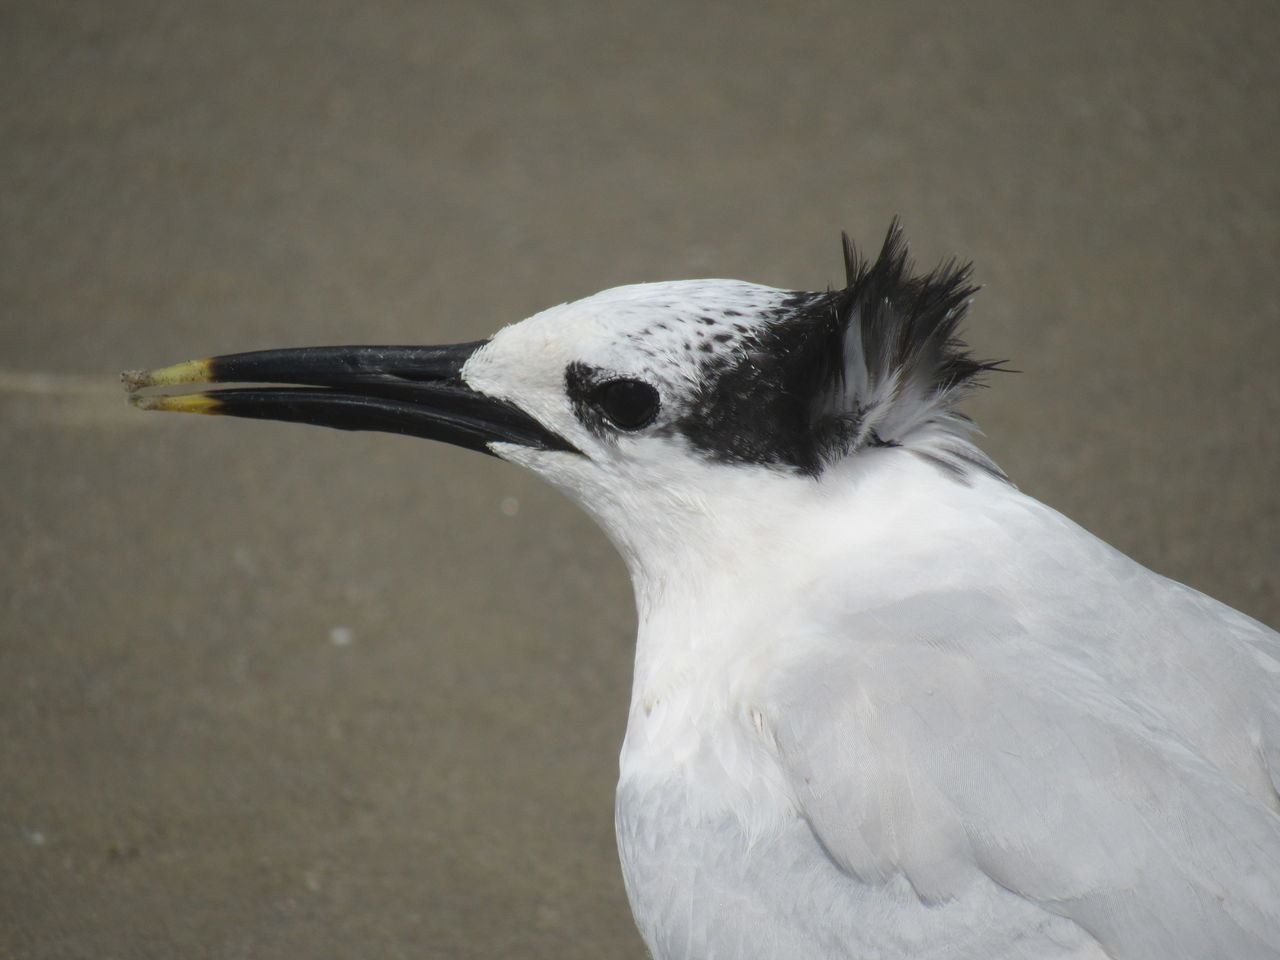 Sandwich Tern Animal Behavior Animal Head  Animals In The Wild Beauty In Nature Black And White Black Eyes Close-up Dots And Spots Feathers Focus On Foreground Gulf Of Mexico Long Beak Sand Small Sea Bird Wildlife Yellow Tip Zoology